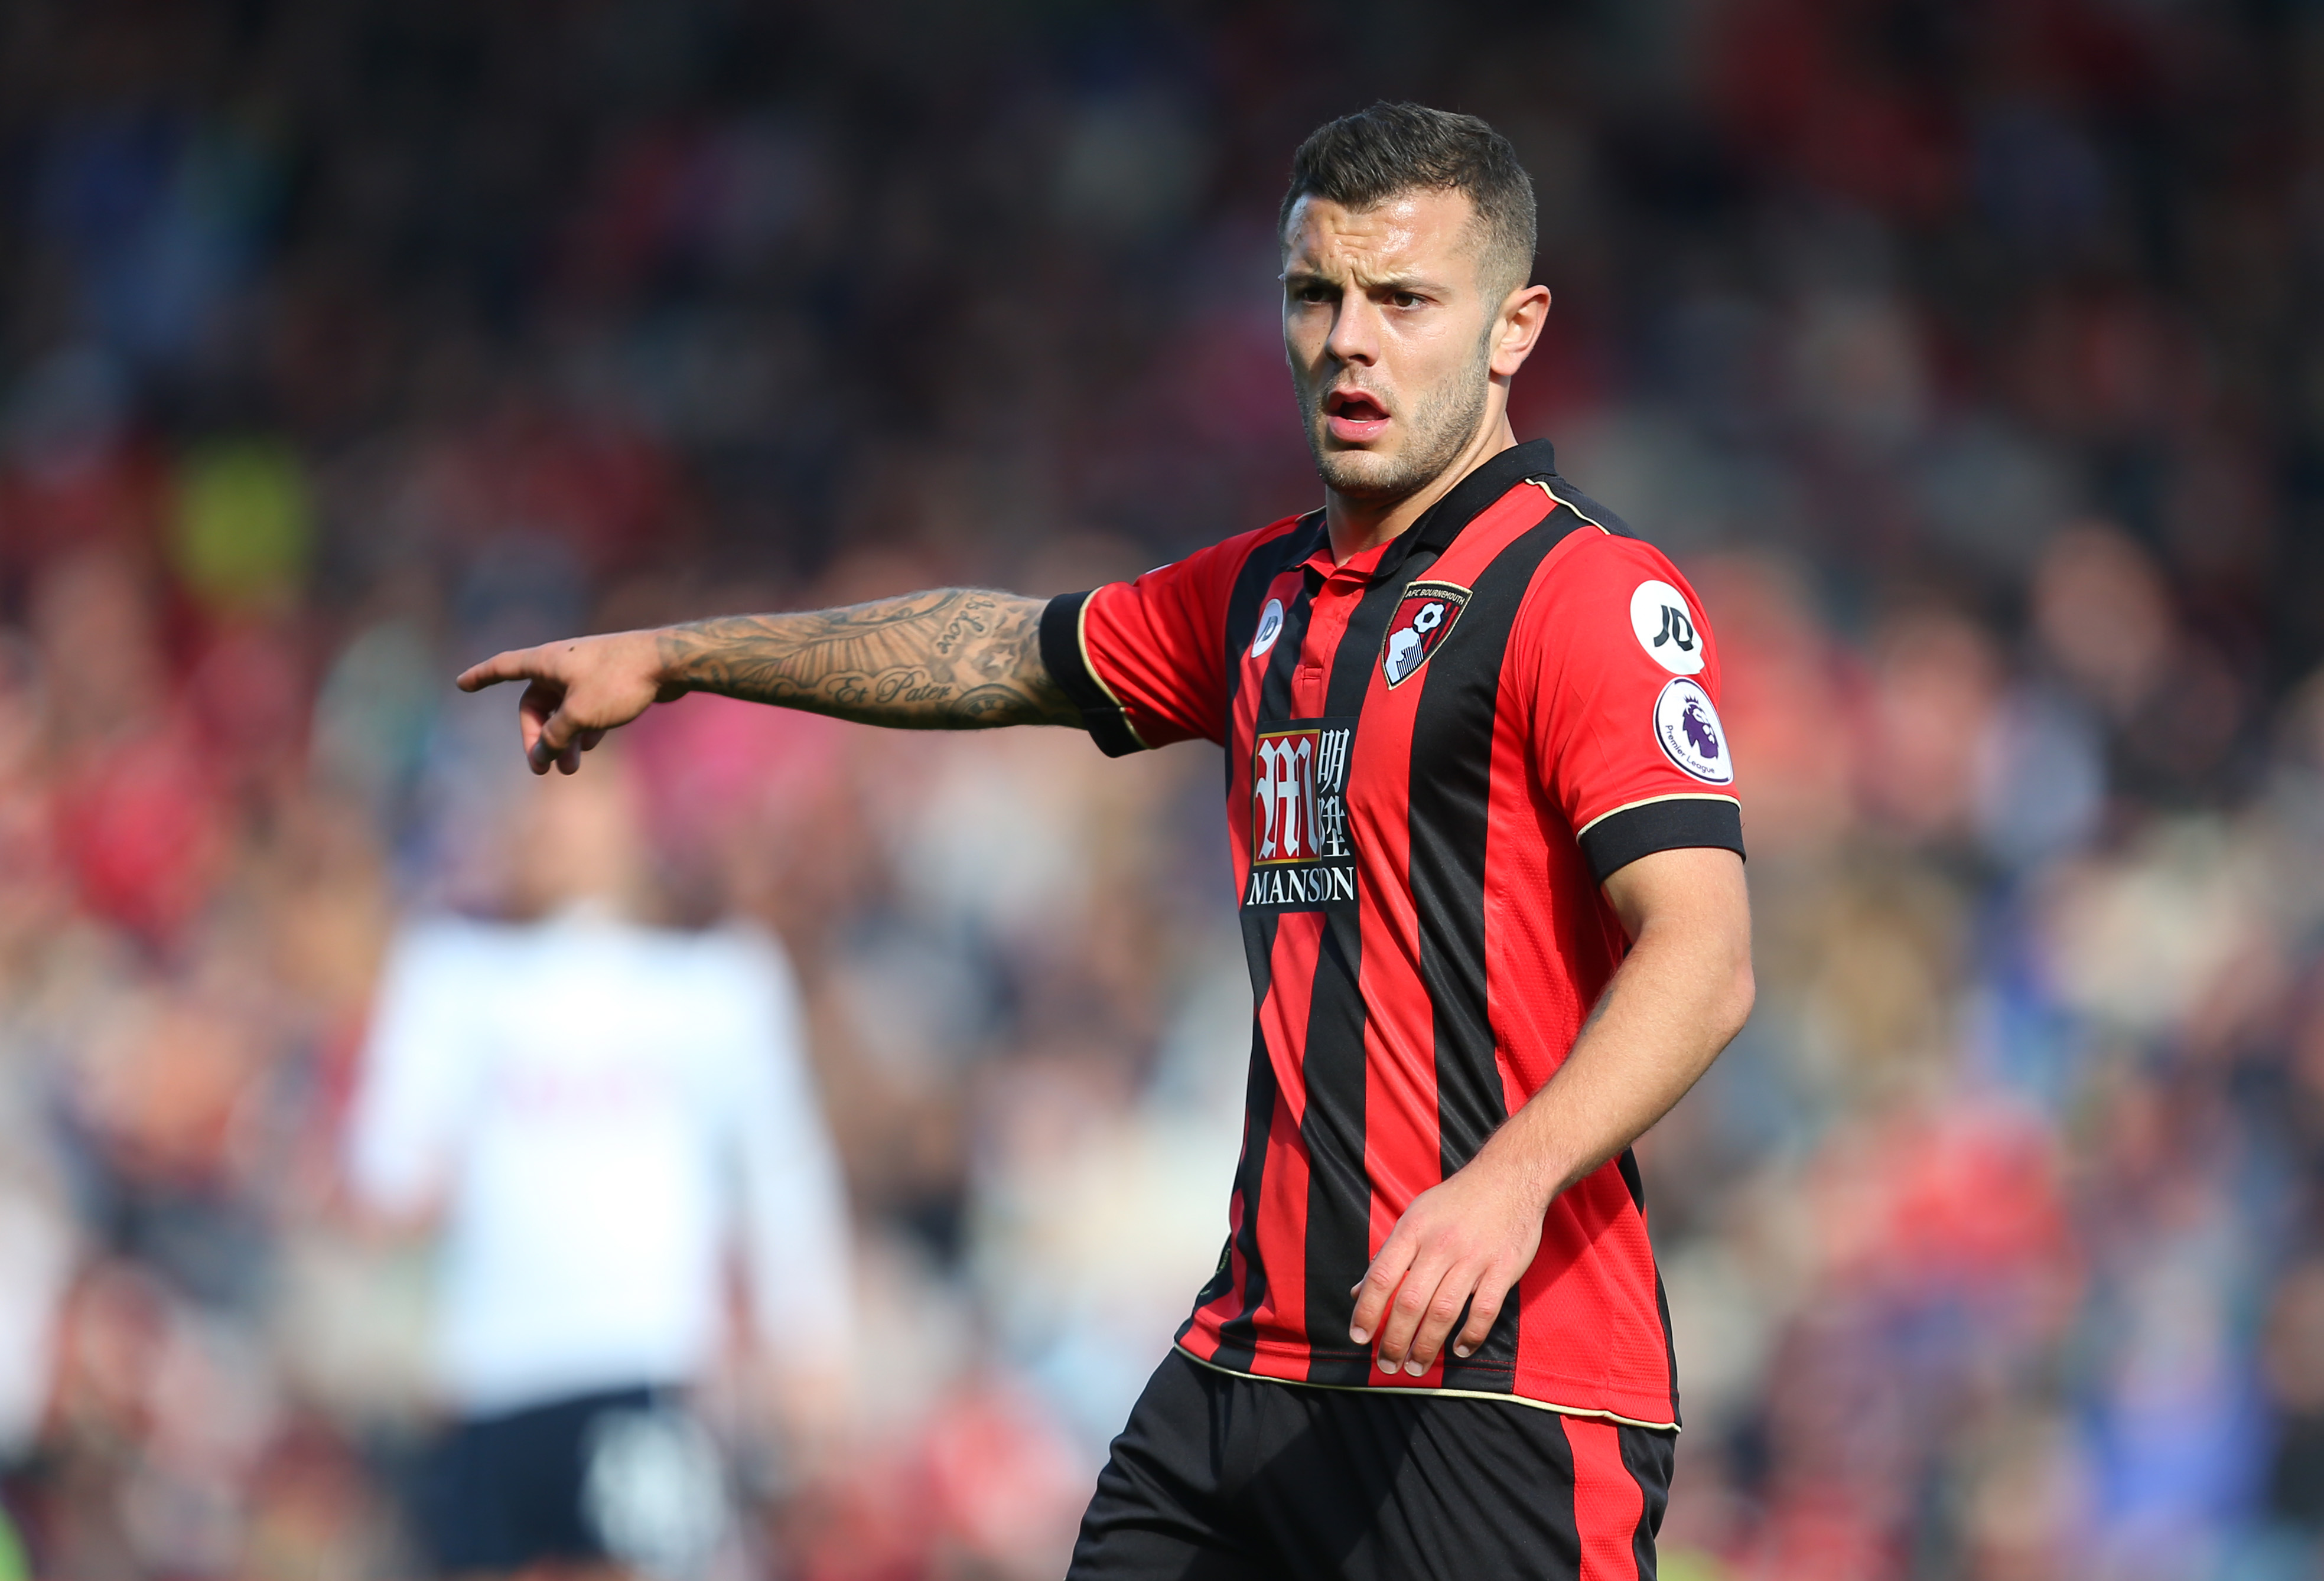 Arsene Wenger letting Jack Wilshere leave shows Arsenal's title credentials, says Petr Cech